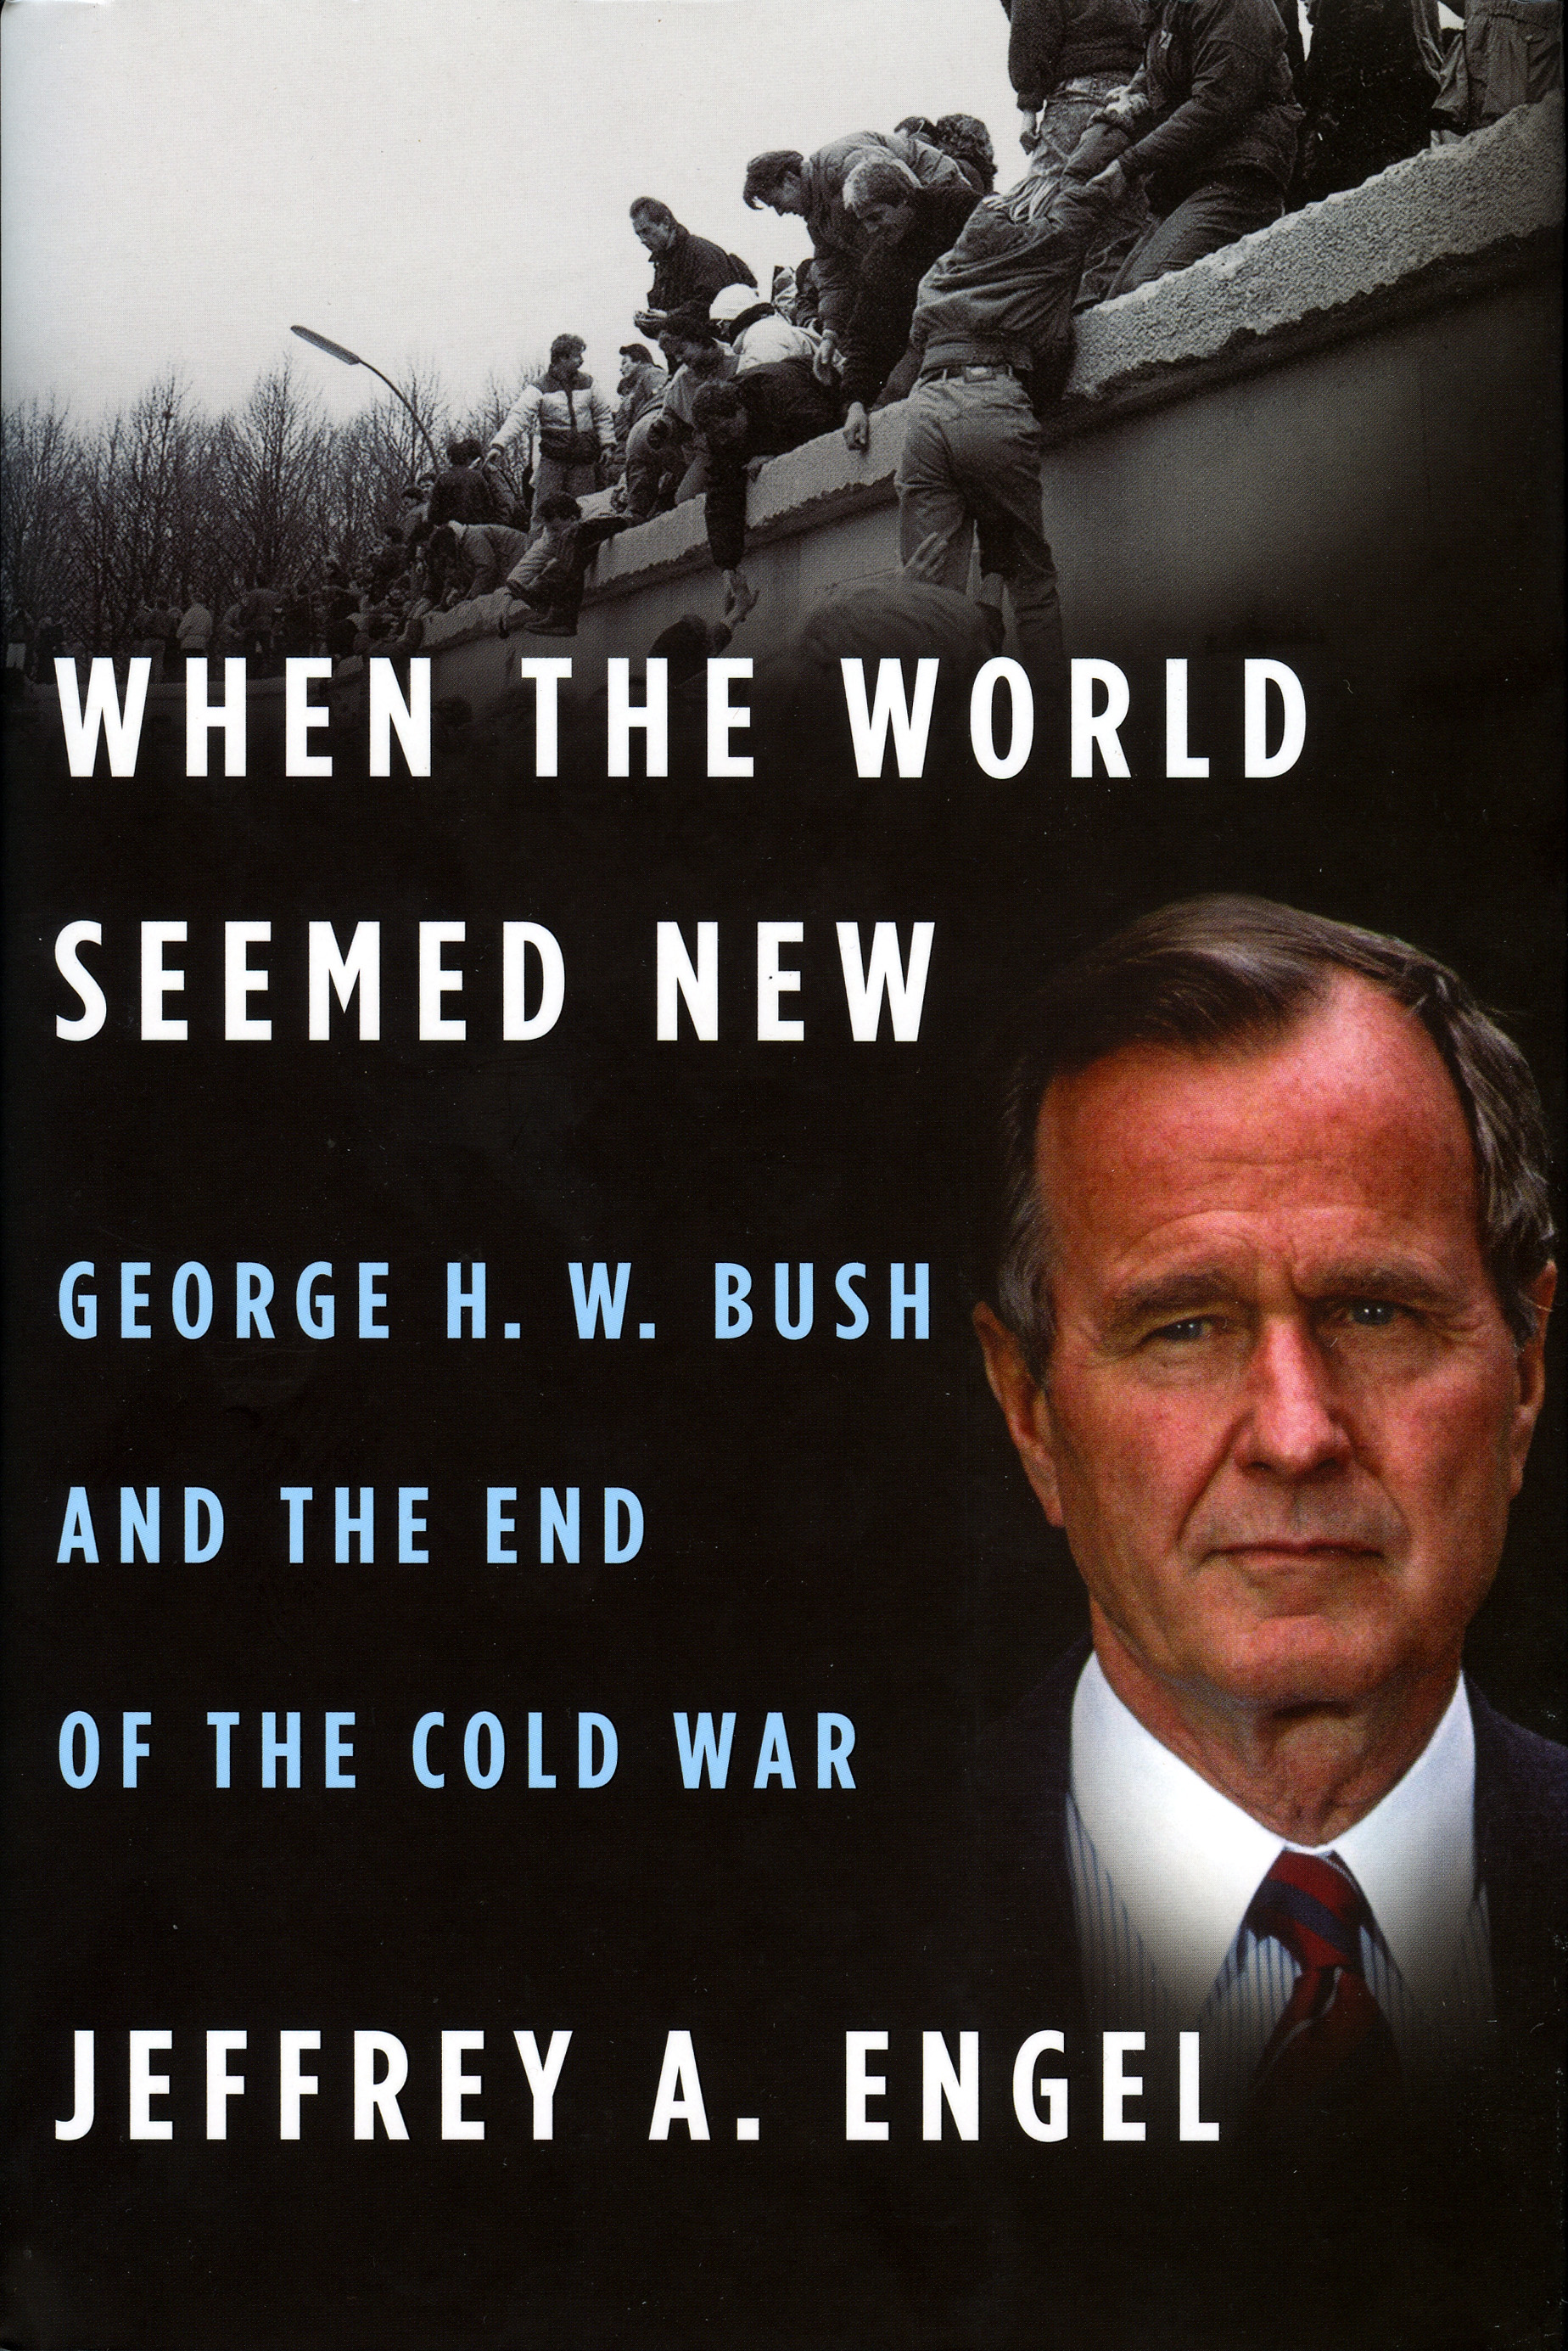 When the World Seemed New: George H.W. Bush and the End of the Cold War by Jeffrey Engel